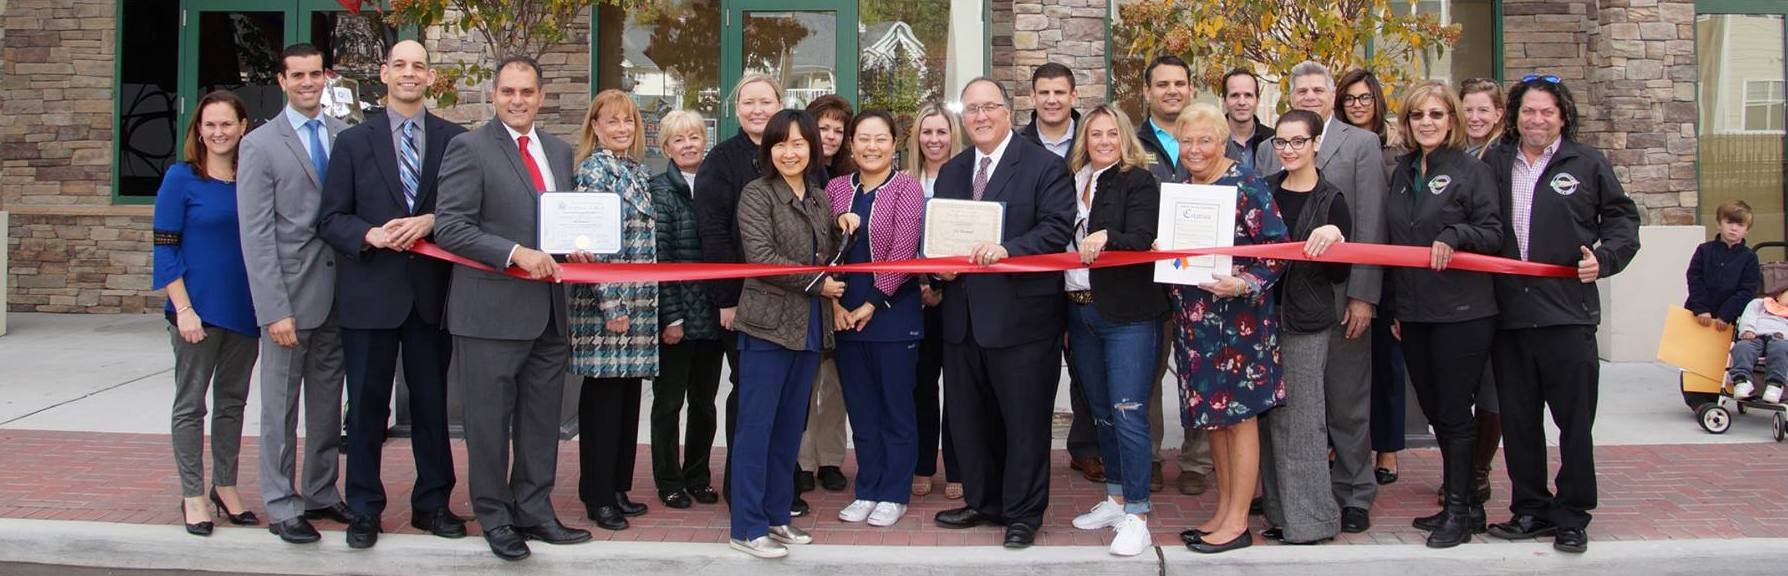 hi-dental-grandopening-farmingdale-dentist.jpg